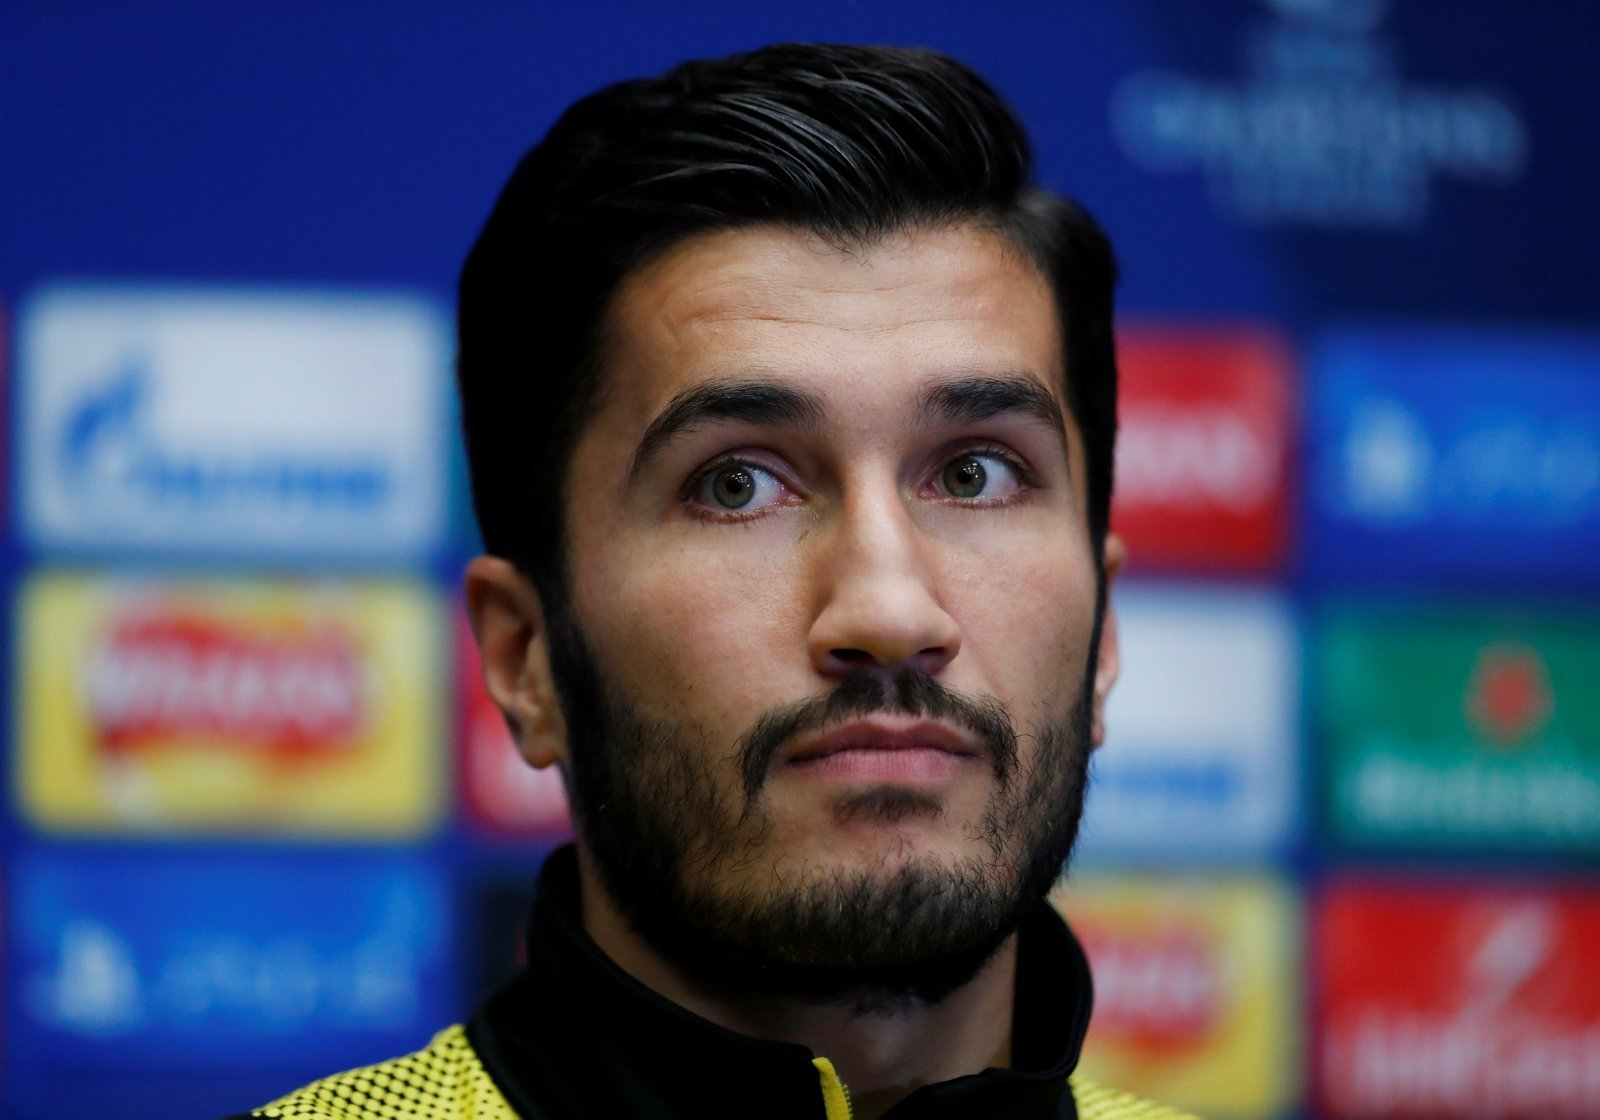 Fulham should sign Nuri Sahin to accompany Schurrle back in the Premier League